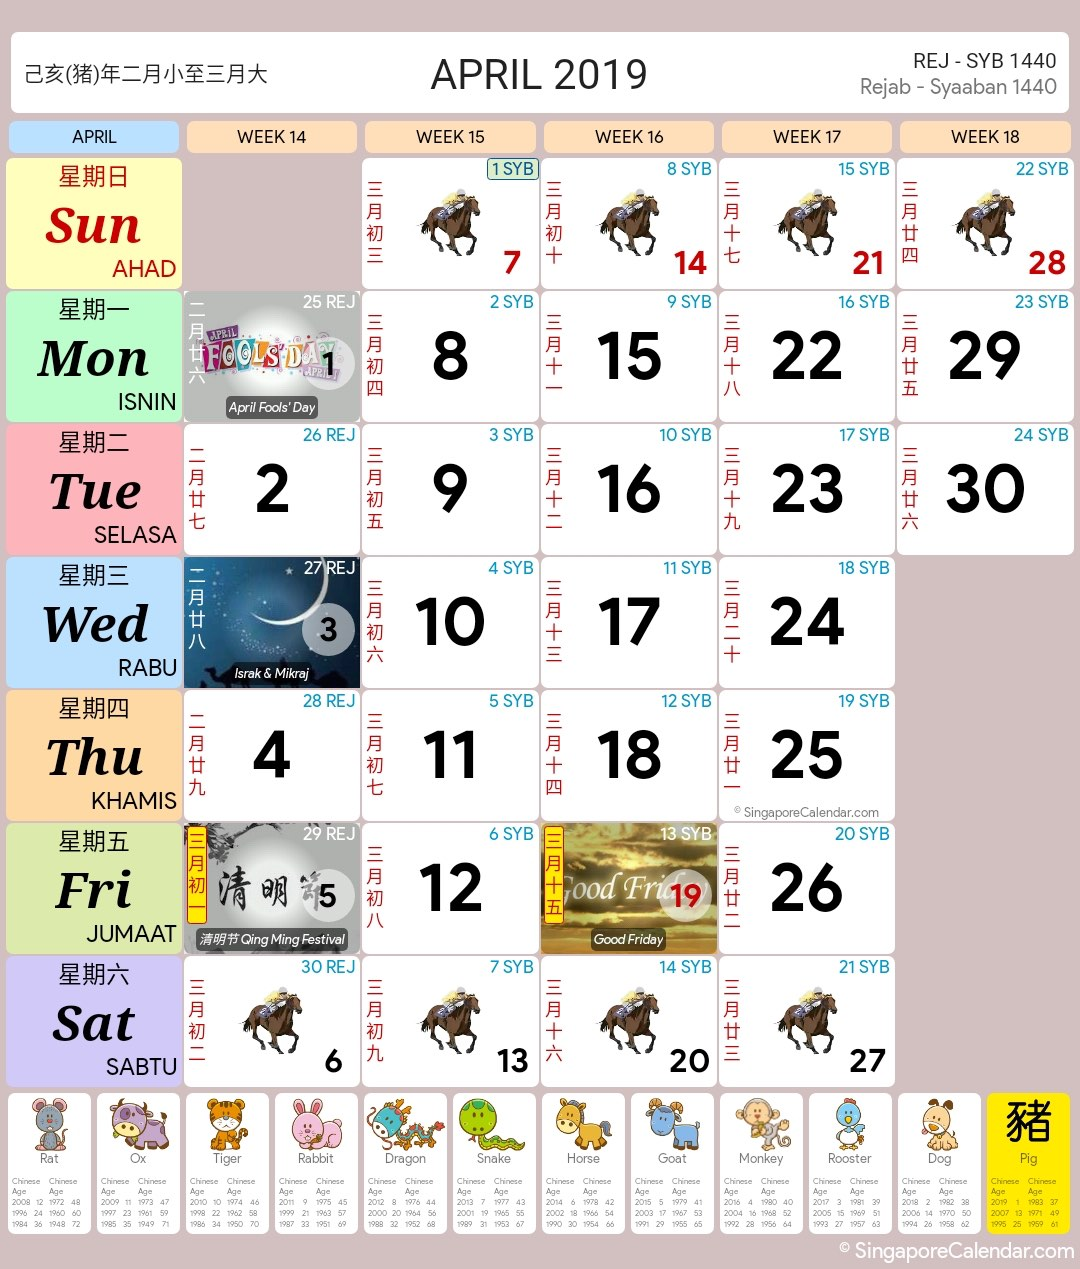 Year 2019 Calendar Singapore With